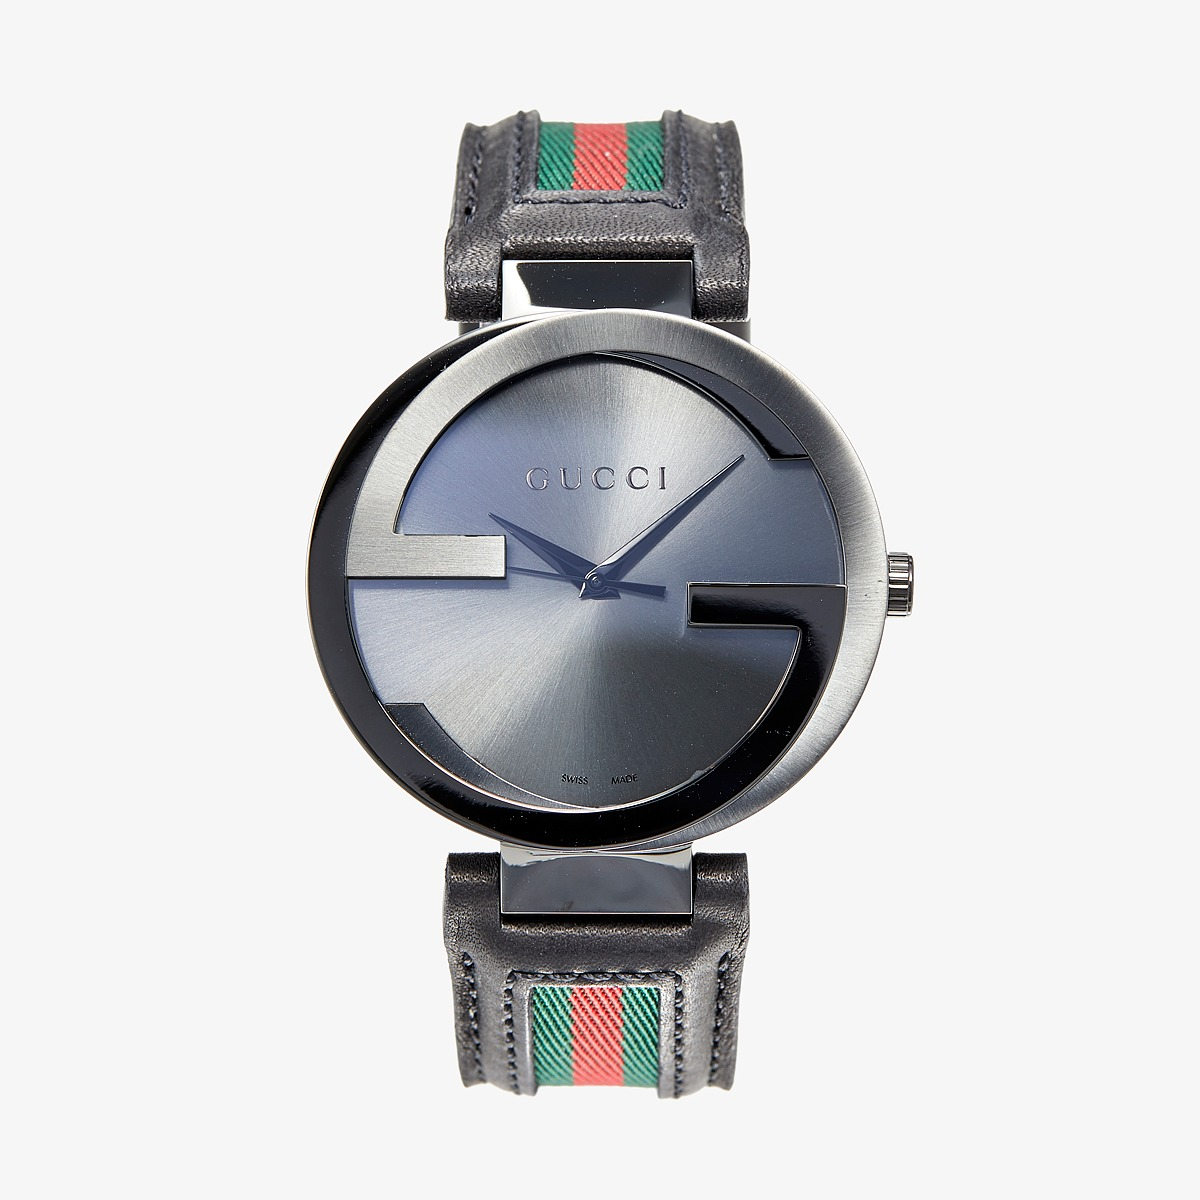 Gucci Interlocking 42mm Leather and Nylon Strap Watch YA133206 Black/Anthracite/Green/Red Watches